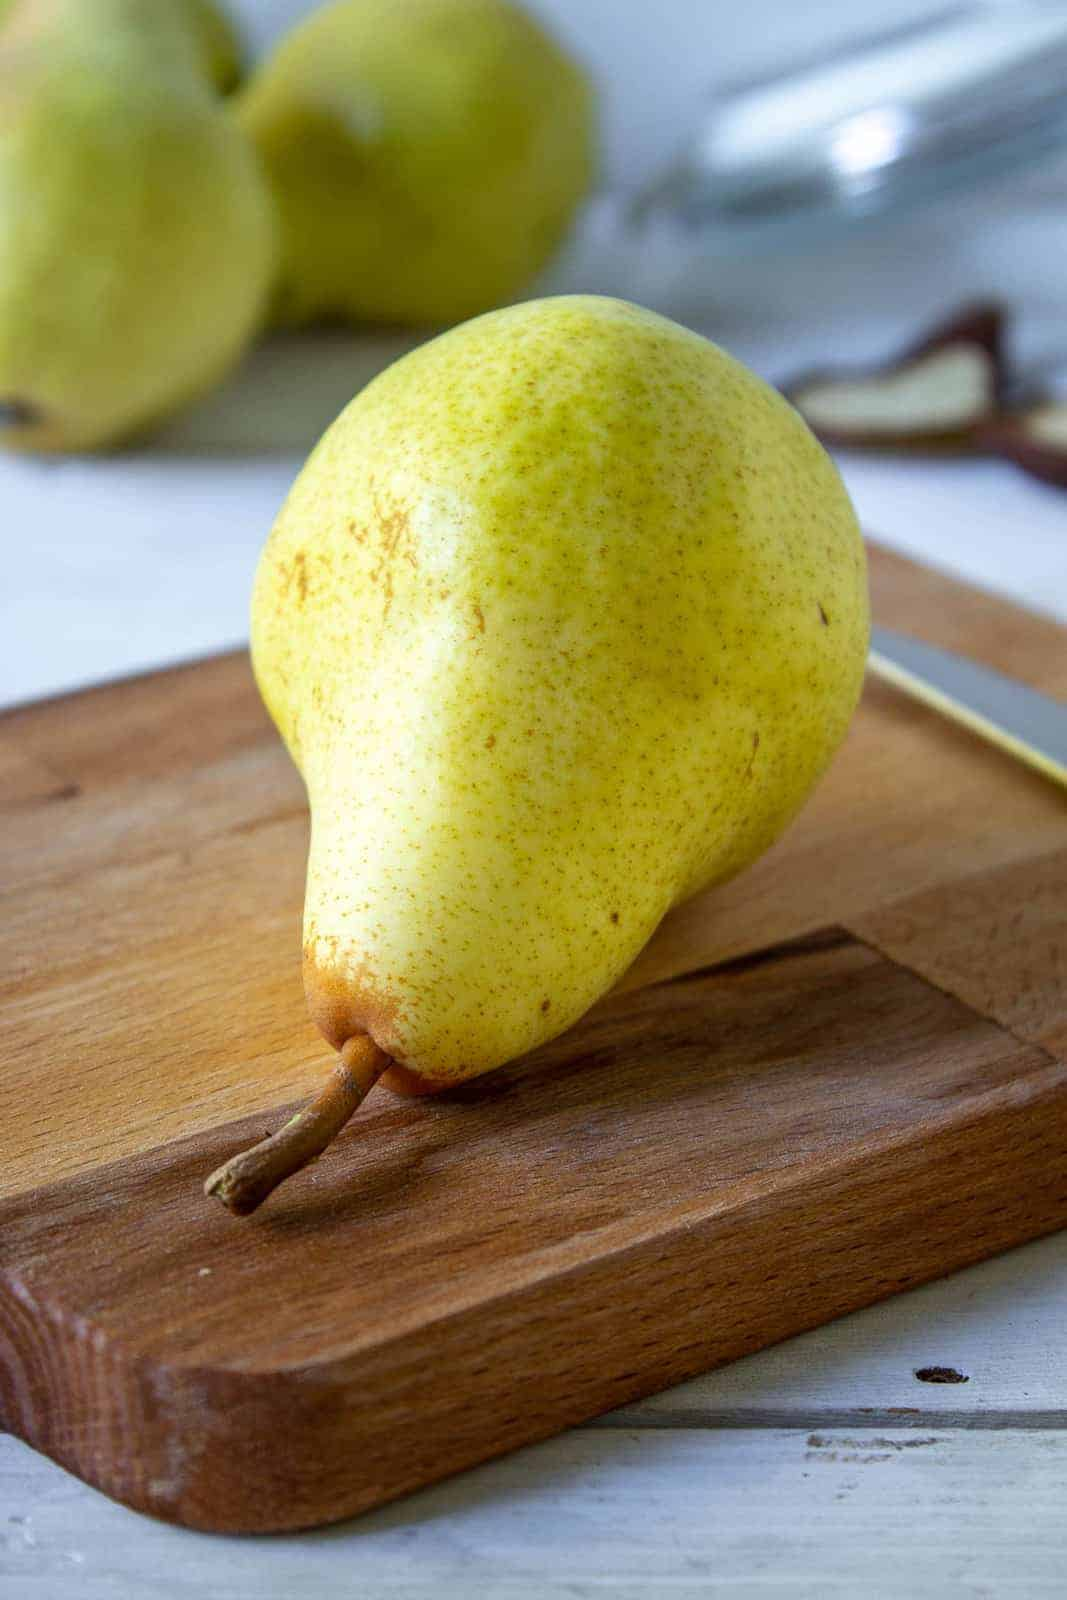 A fresh pear on a wooden cutting board.